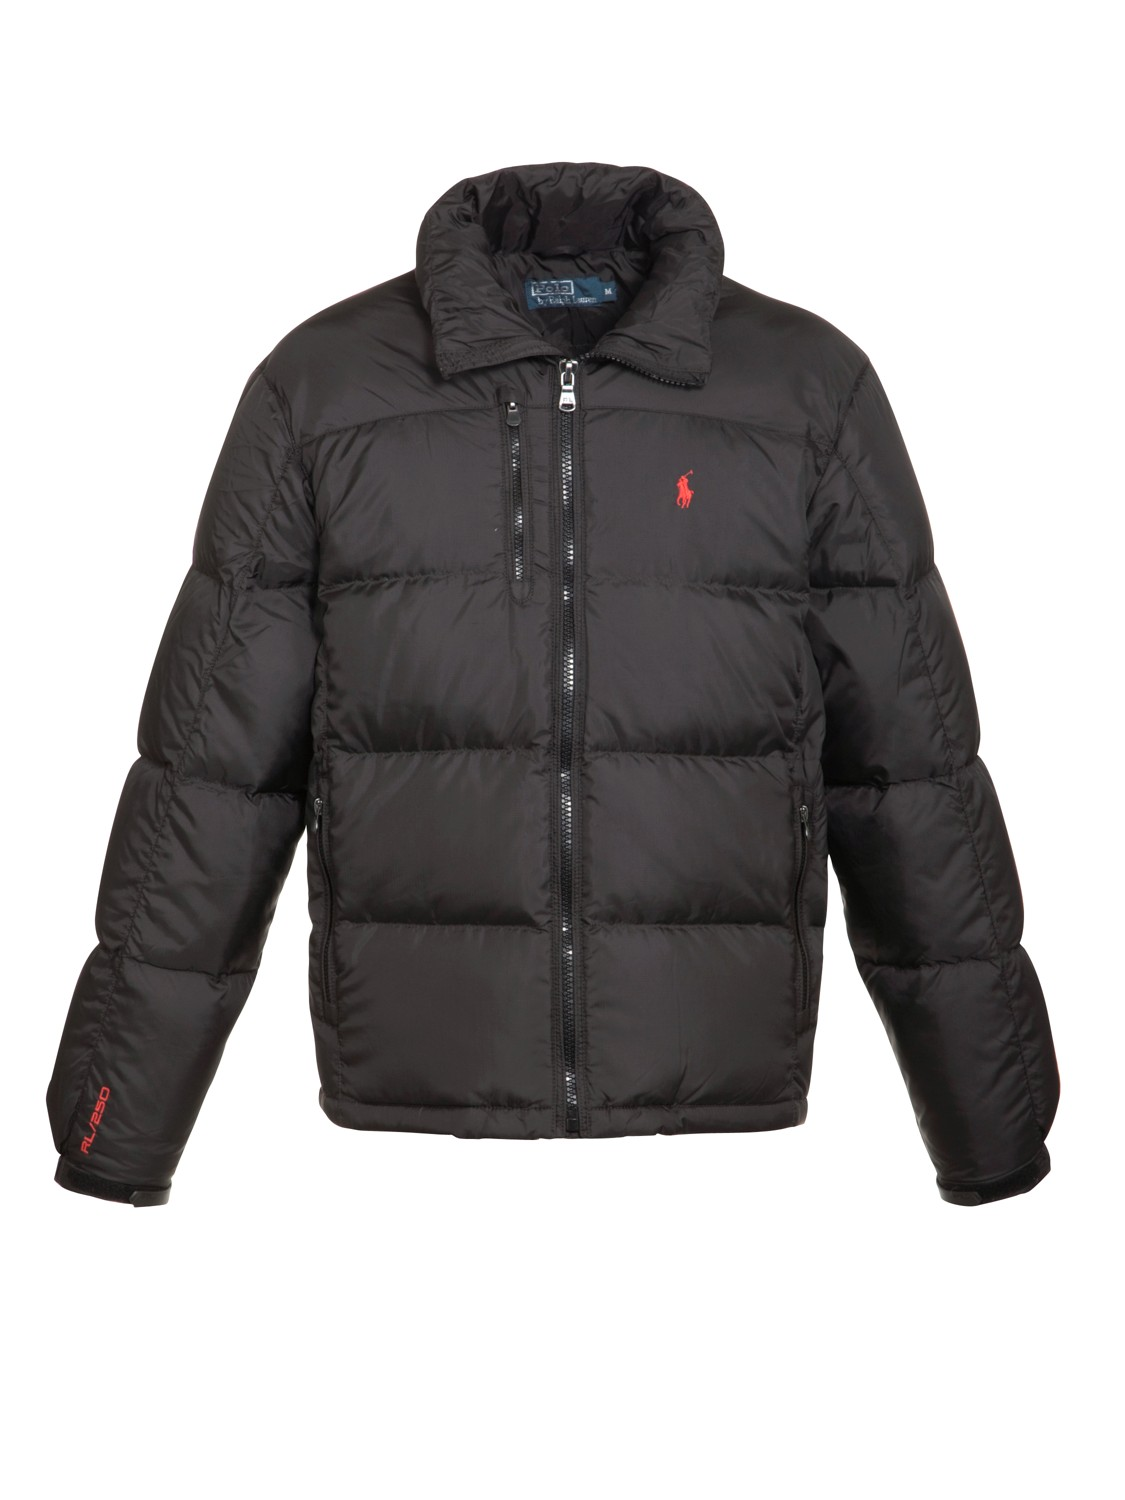 polo ralph lauren rl250 puffer jacket in black for men lyst. Black Bedroom Furniture Sets. Home Design Ideas